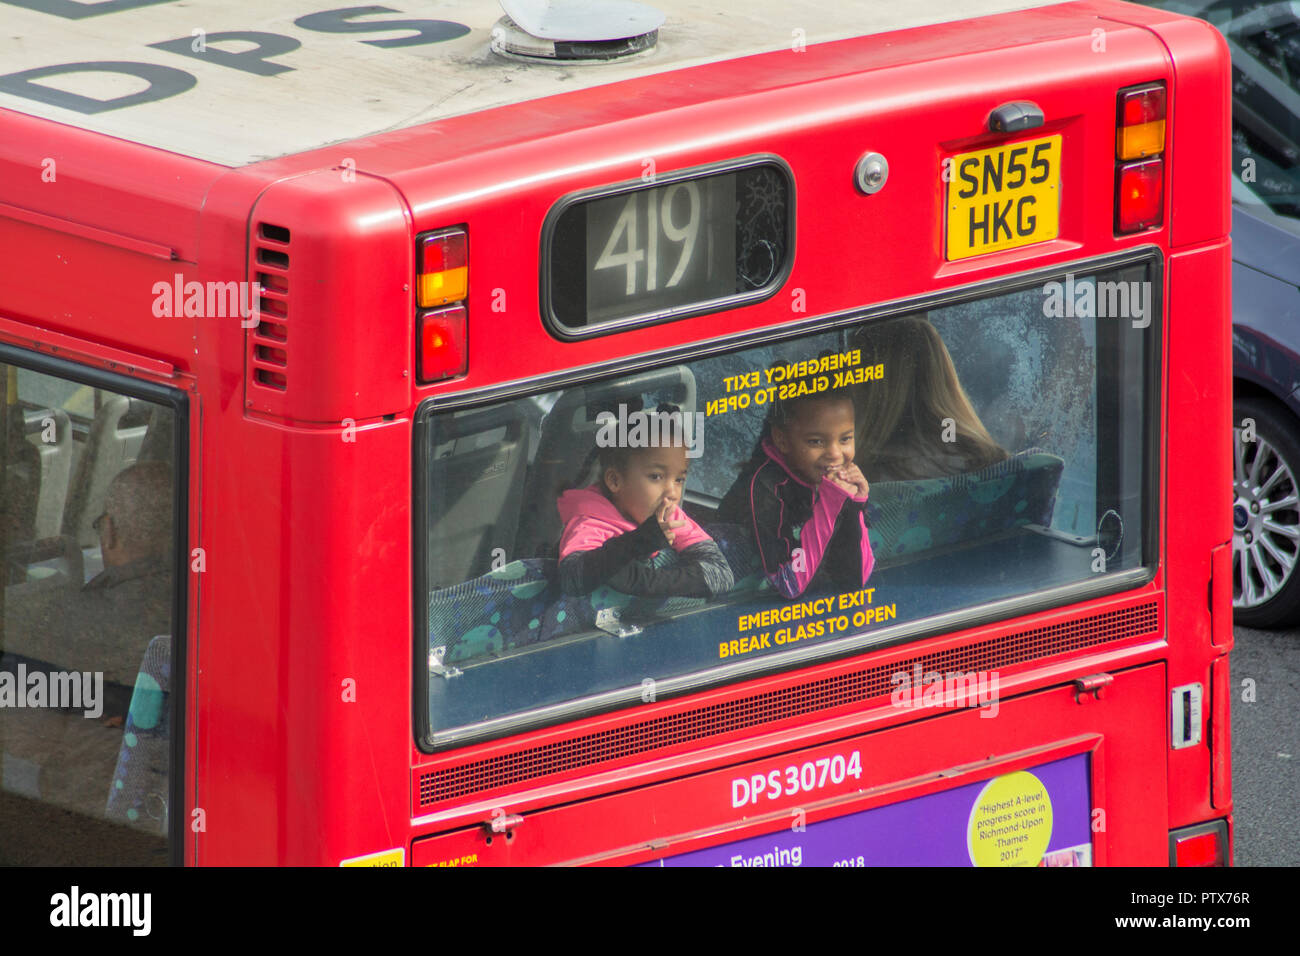 Bus Operator Stock Photos & Bus Operator Stock Images - Alamy